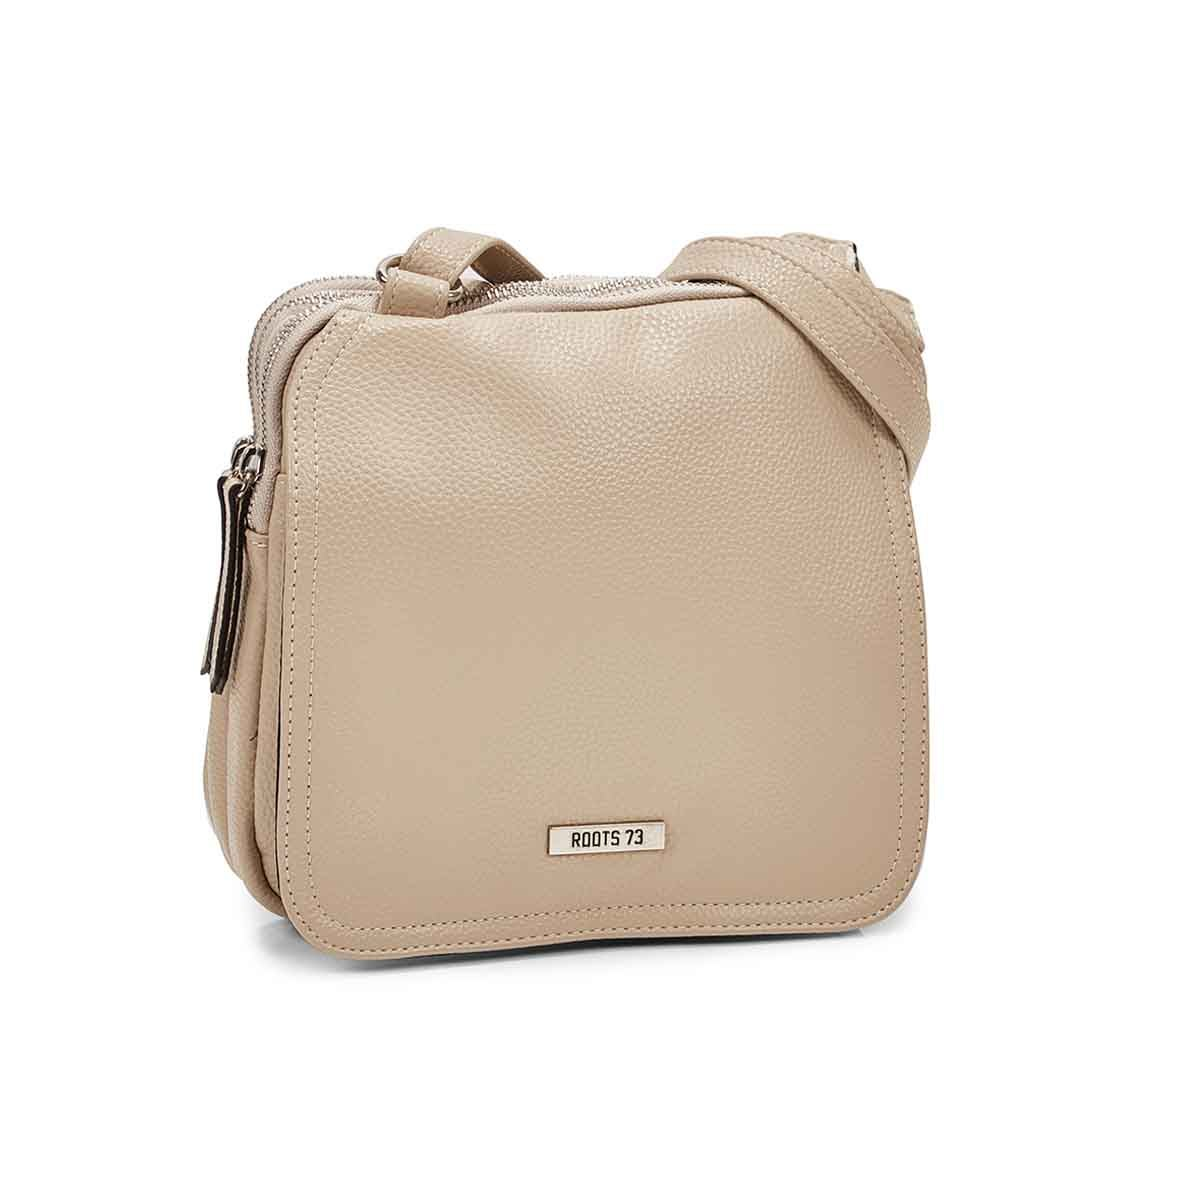 Women's R5201 beige crossbody bag